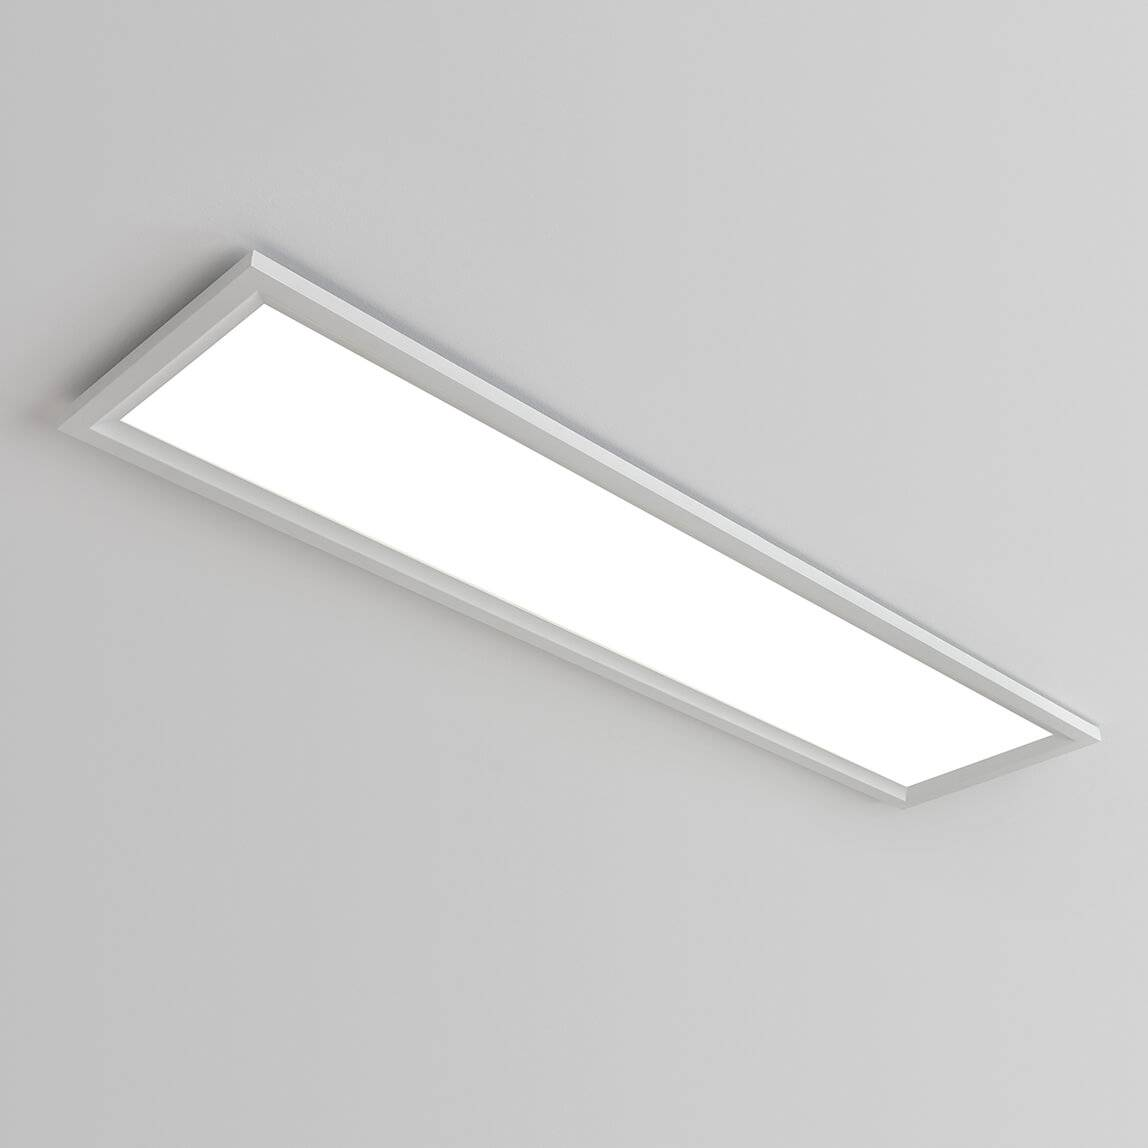 Skylight 1ft X 4ft ultra-thin LED panel